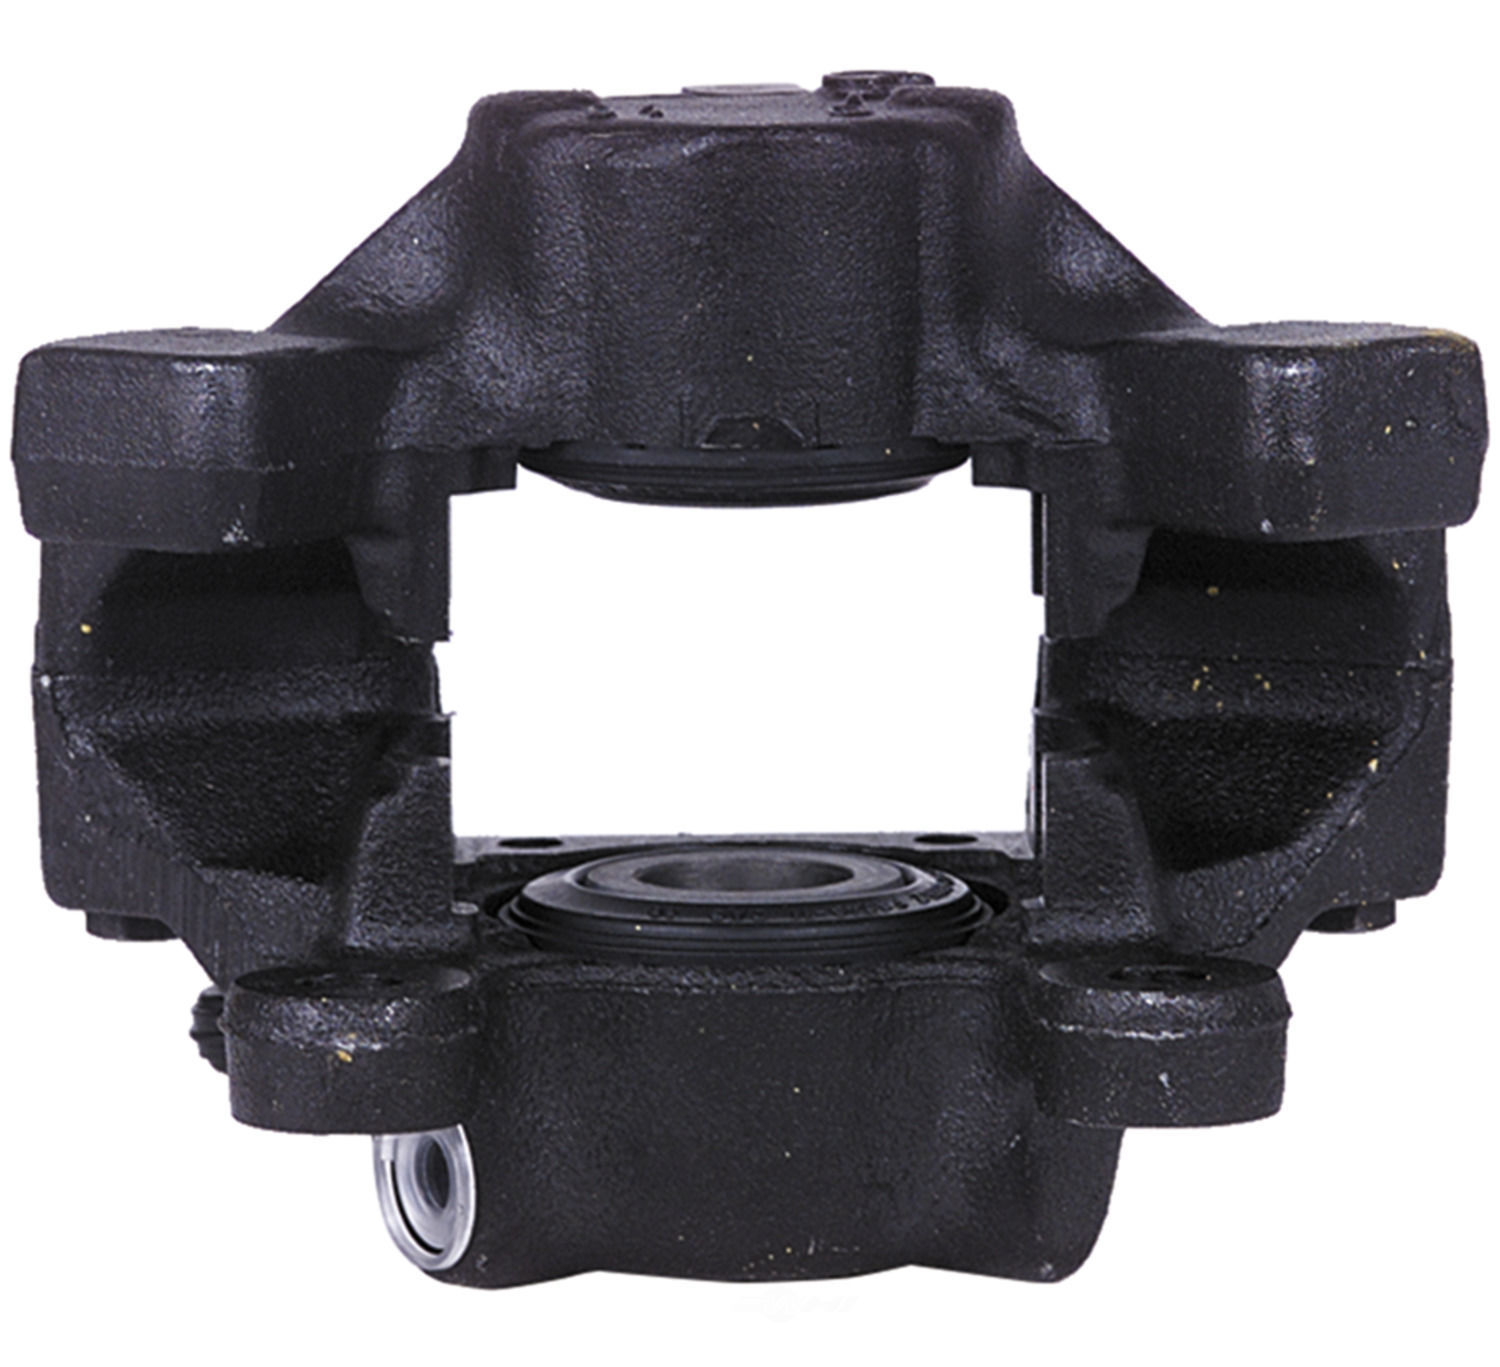 CARDONE/A-1 CARDONE - Reman Friction Choice Caliper (Rear Left) - A1C 19-1703